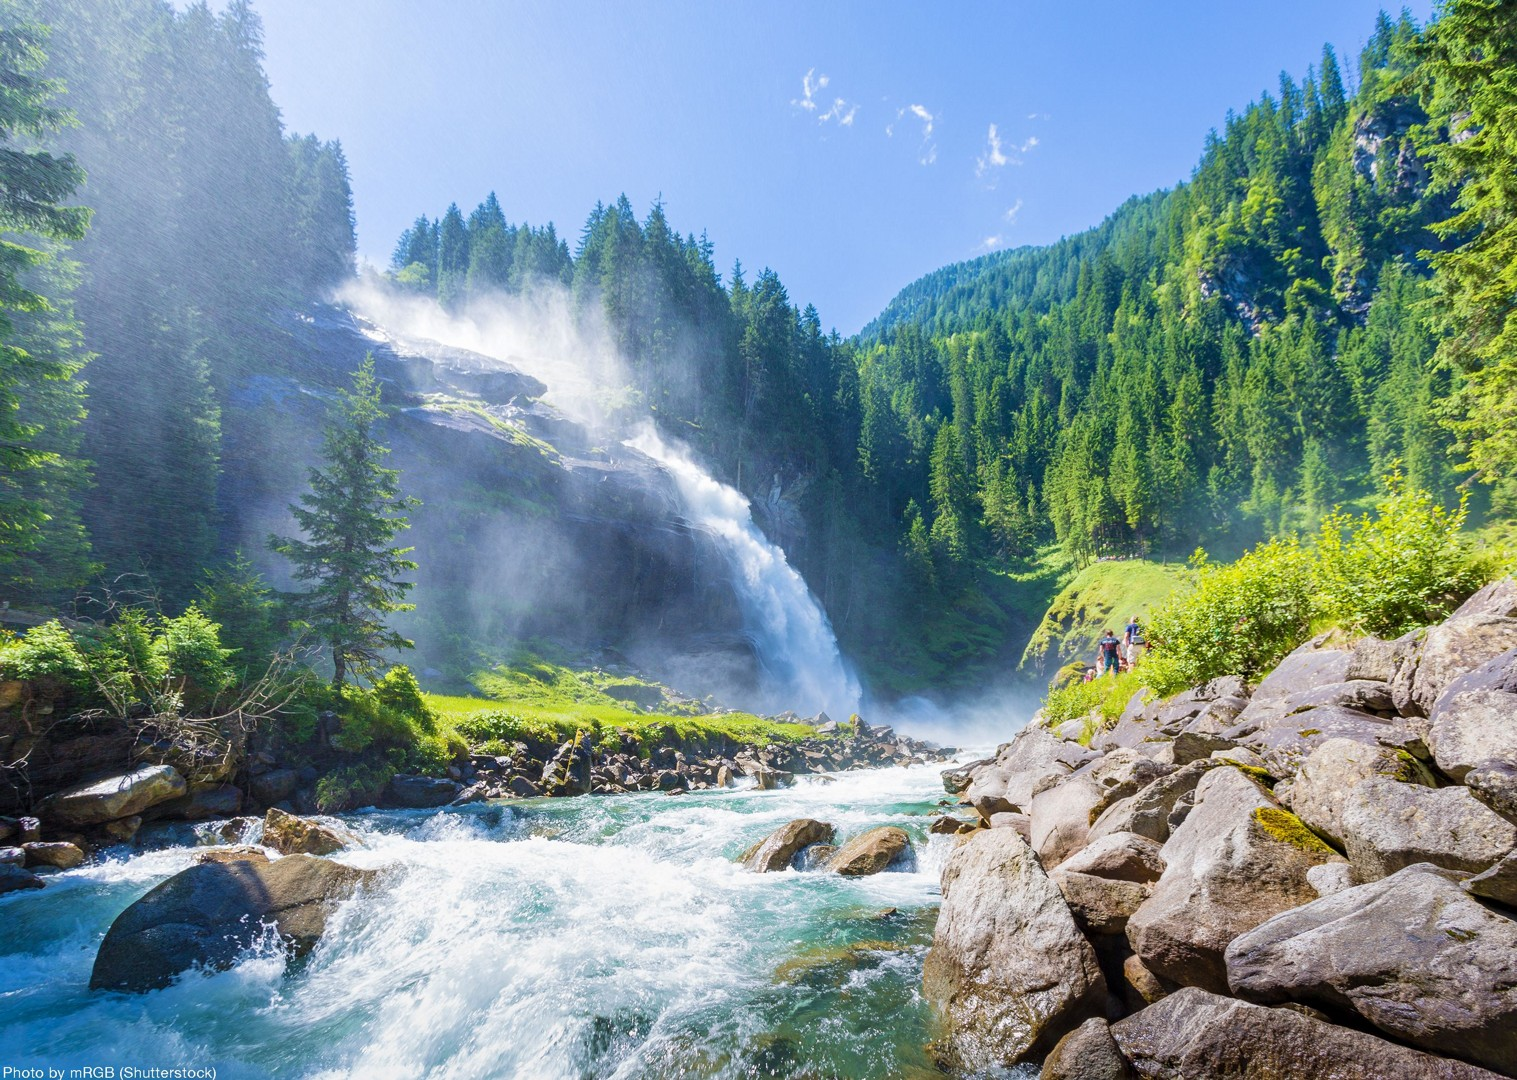 cycling-family-waterfall-austria.jpg - NEW! Austria - Tauern Valleys - Self-Guided Family Cycling Holiday - Family Cycling